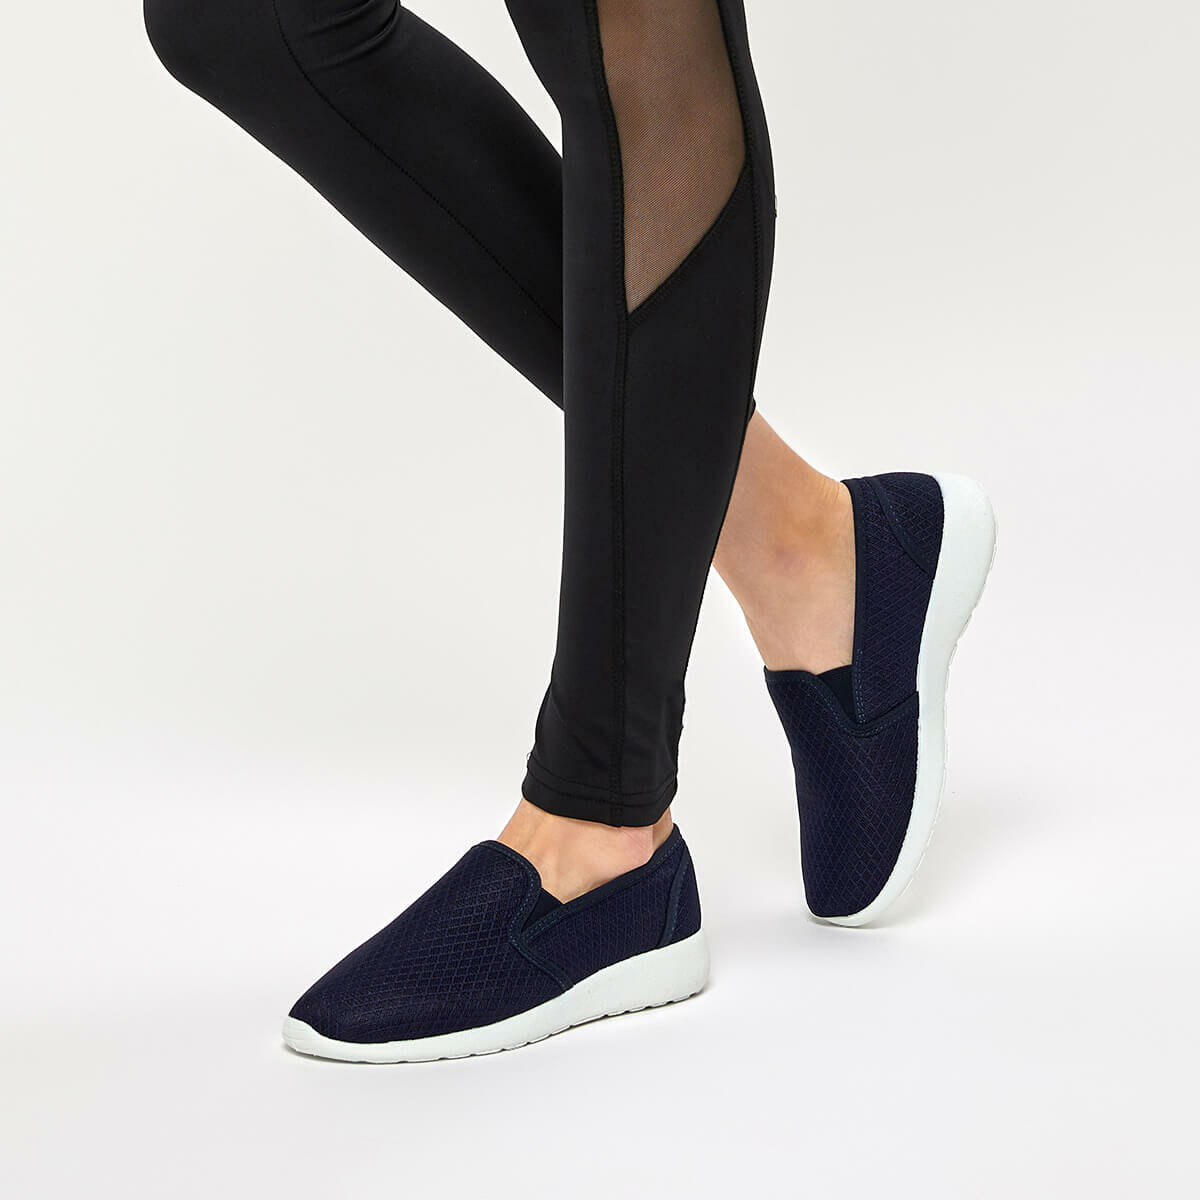 FLO 91.354969.Z Navy Blue Women 'S Slip On Shoes Polaris